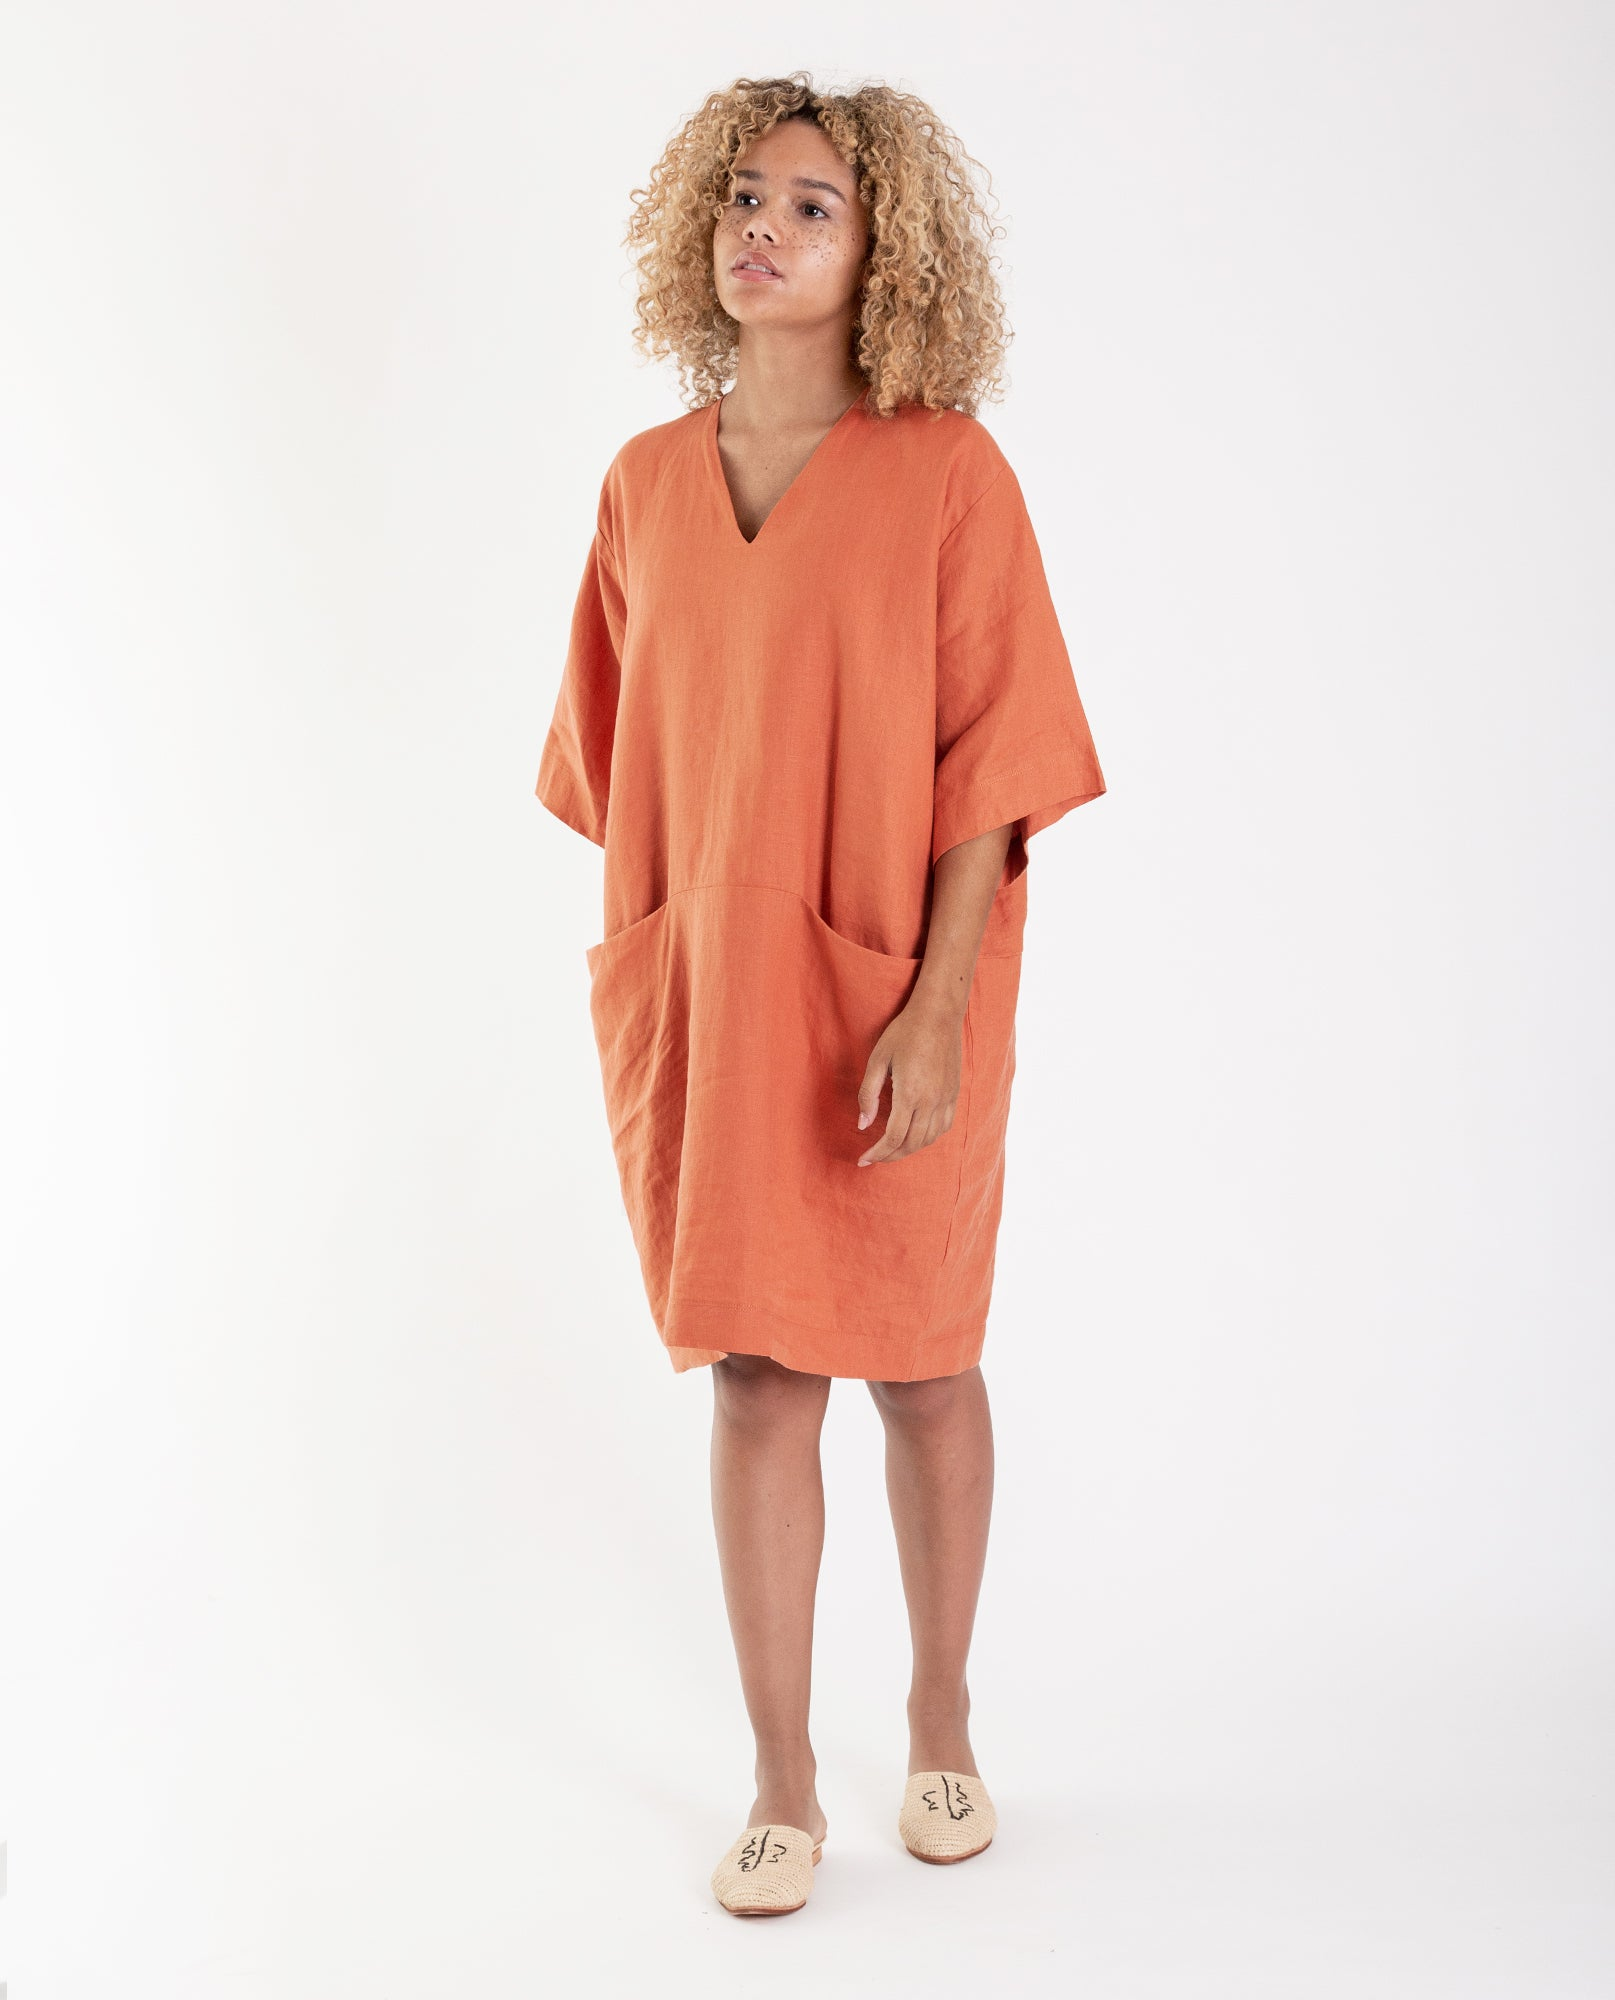 BIA Linen Dress In Madder